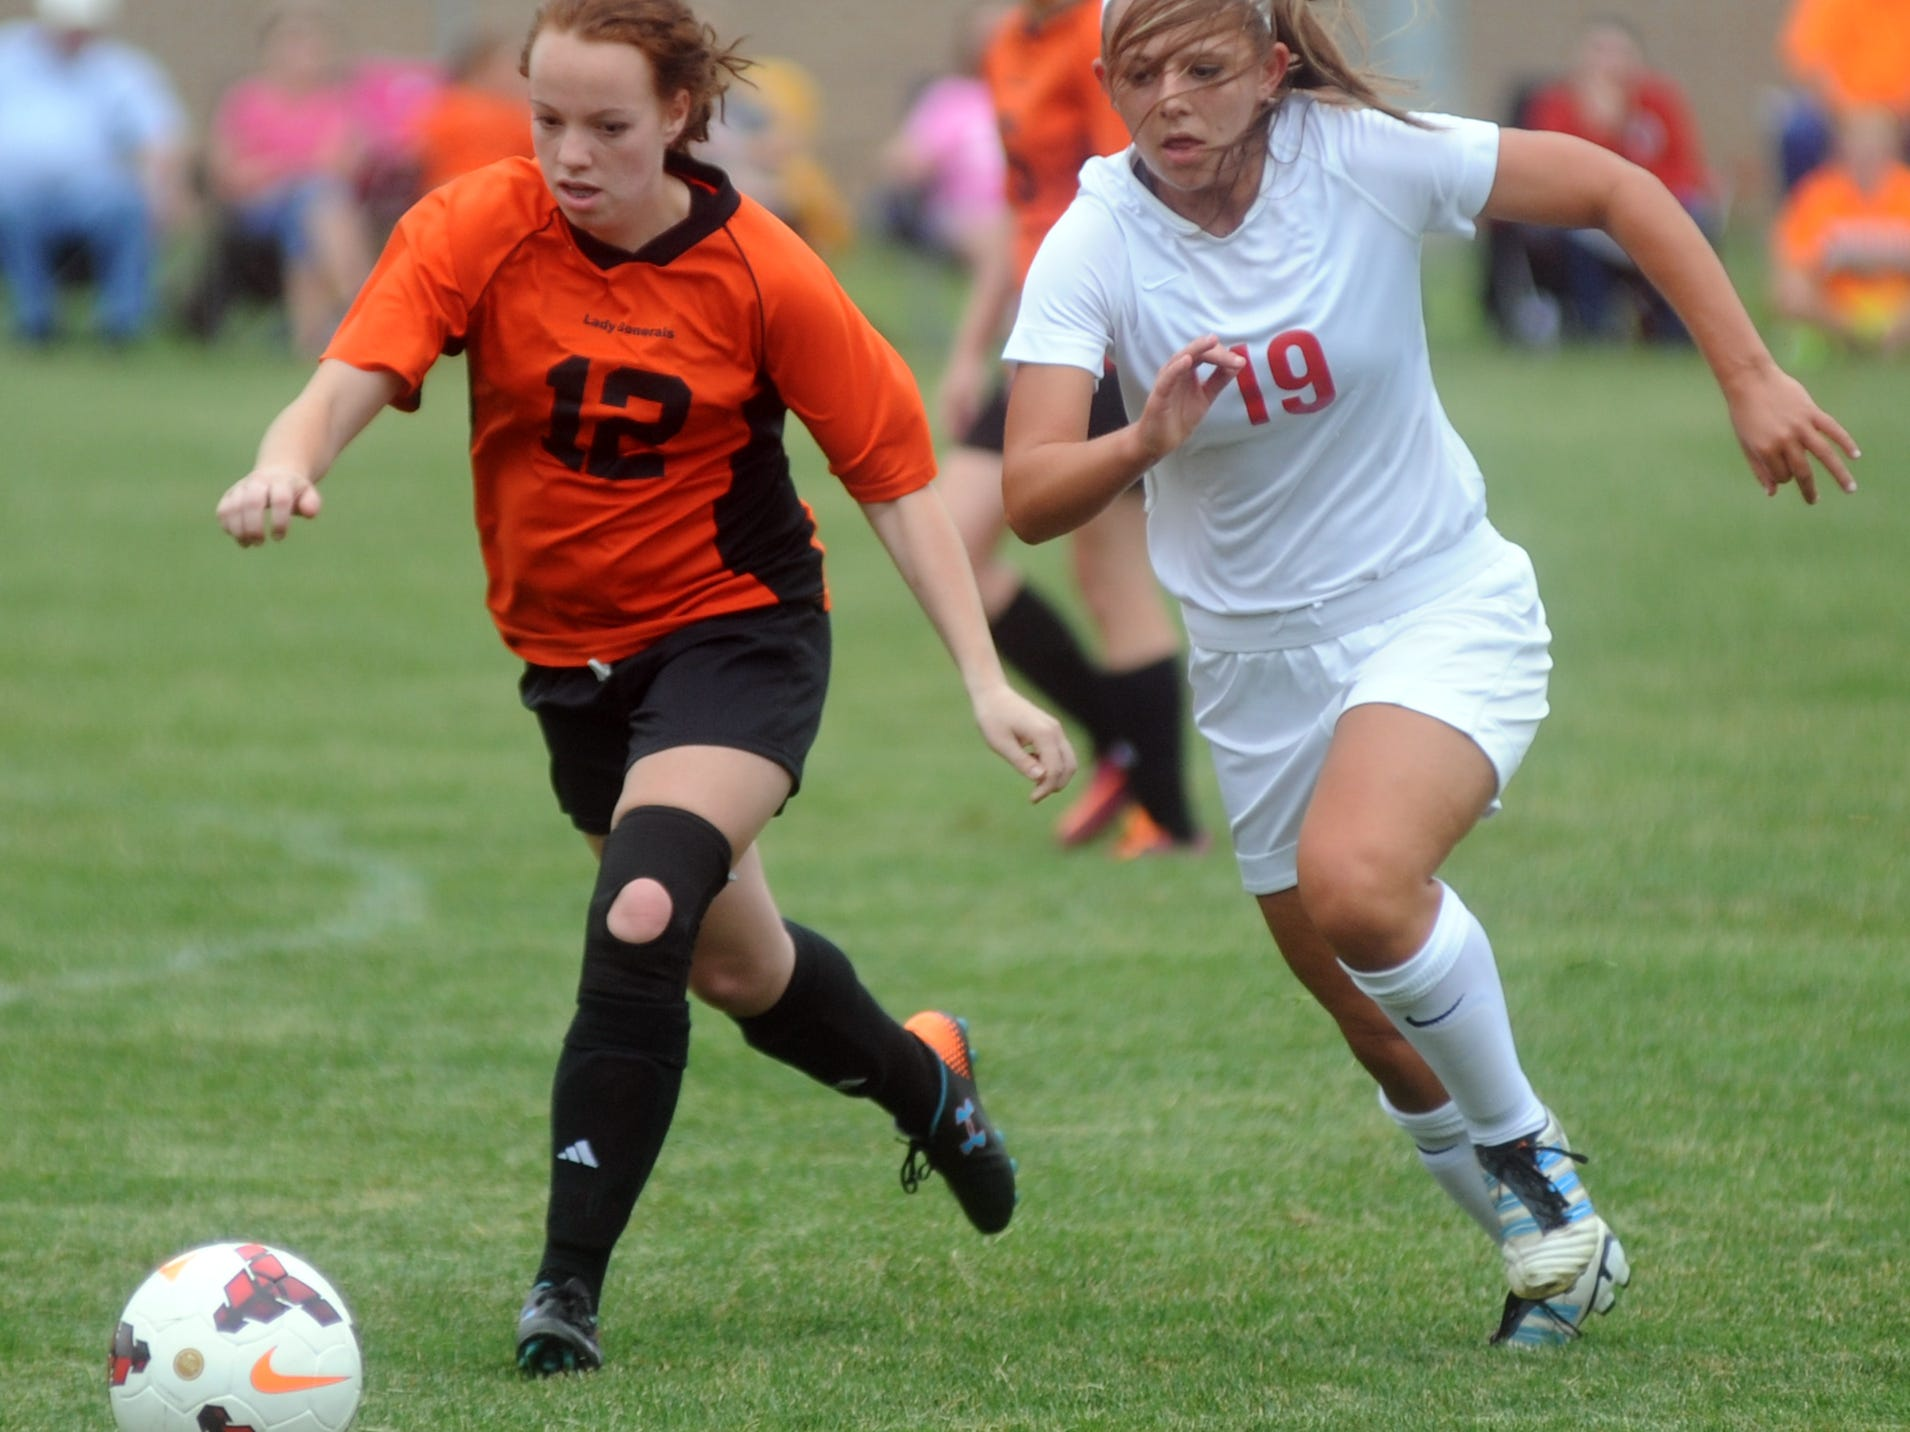 Ridgewood's Hollie Schwab and Coshocton's Emily Hartley fight for the ball during Thursday's game.